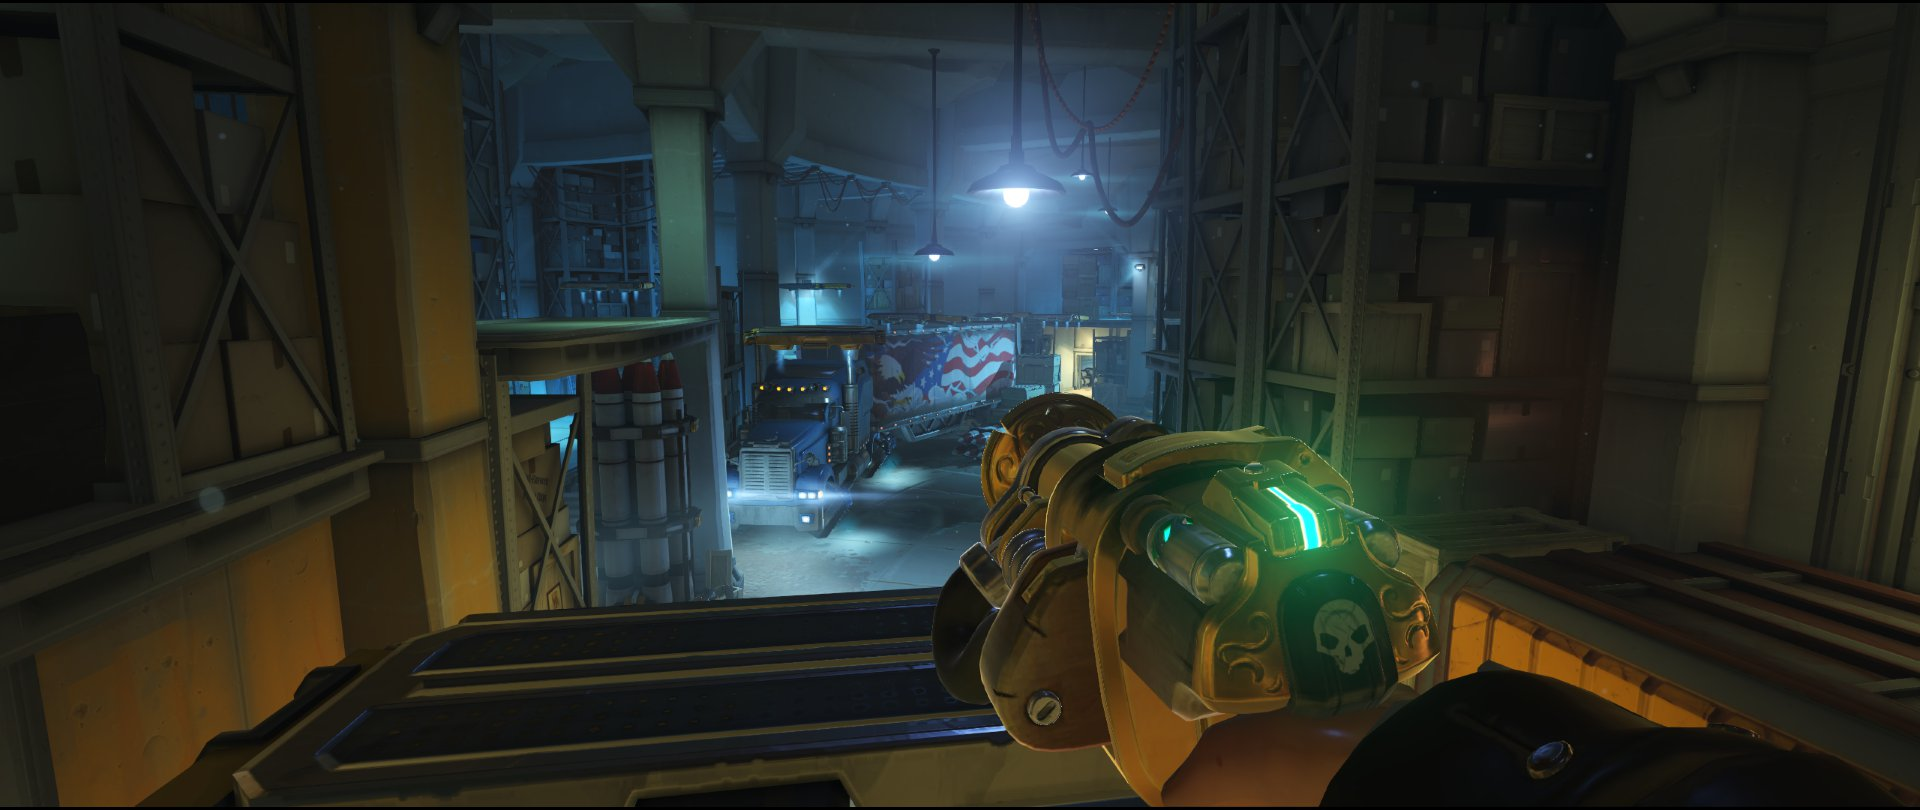 Moving platforms third point turret placement Torbjorn Route 66 Overwatch